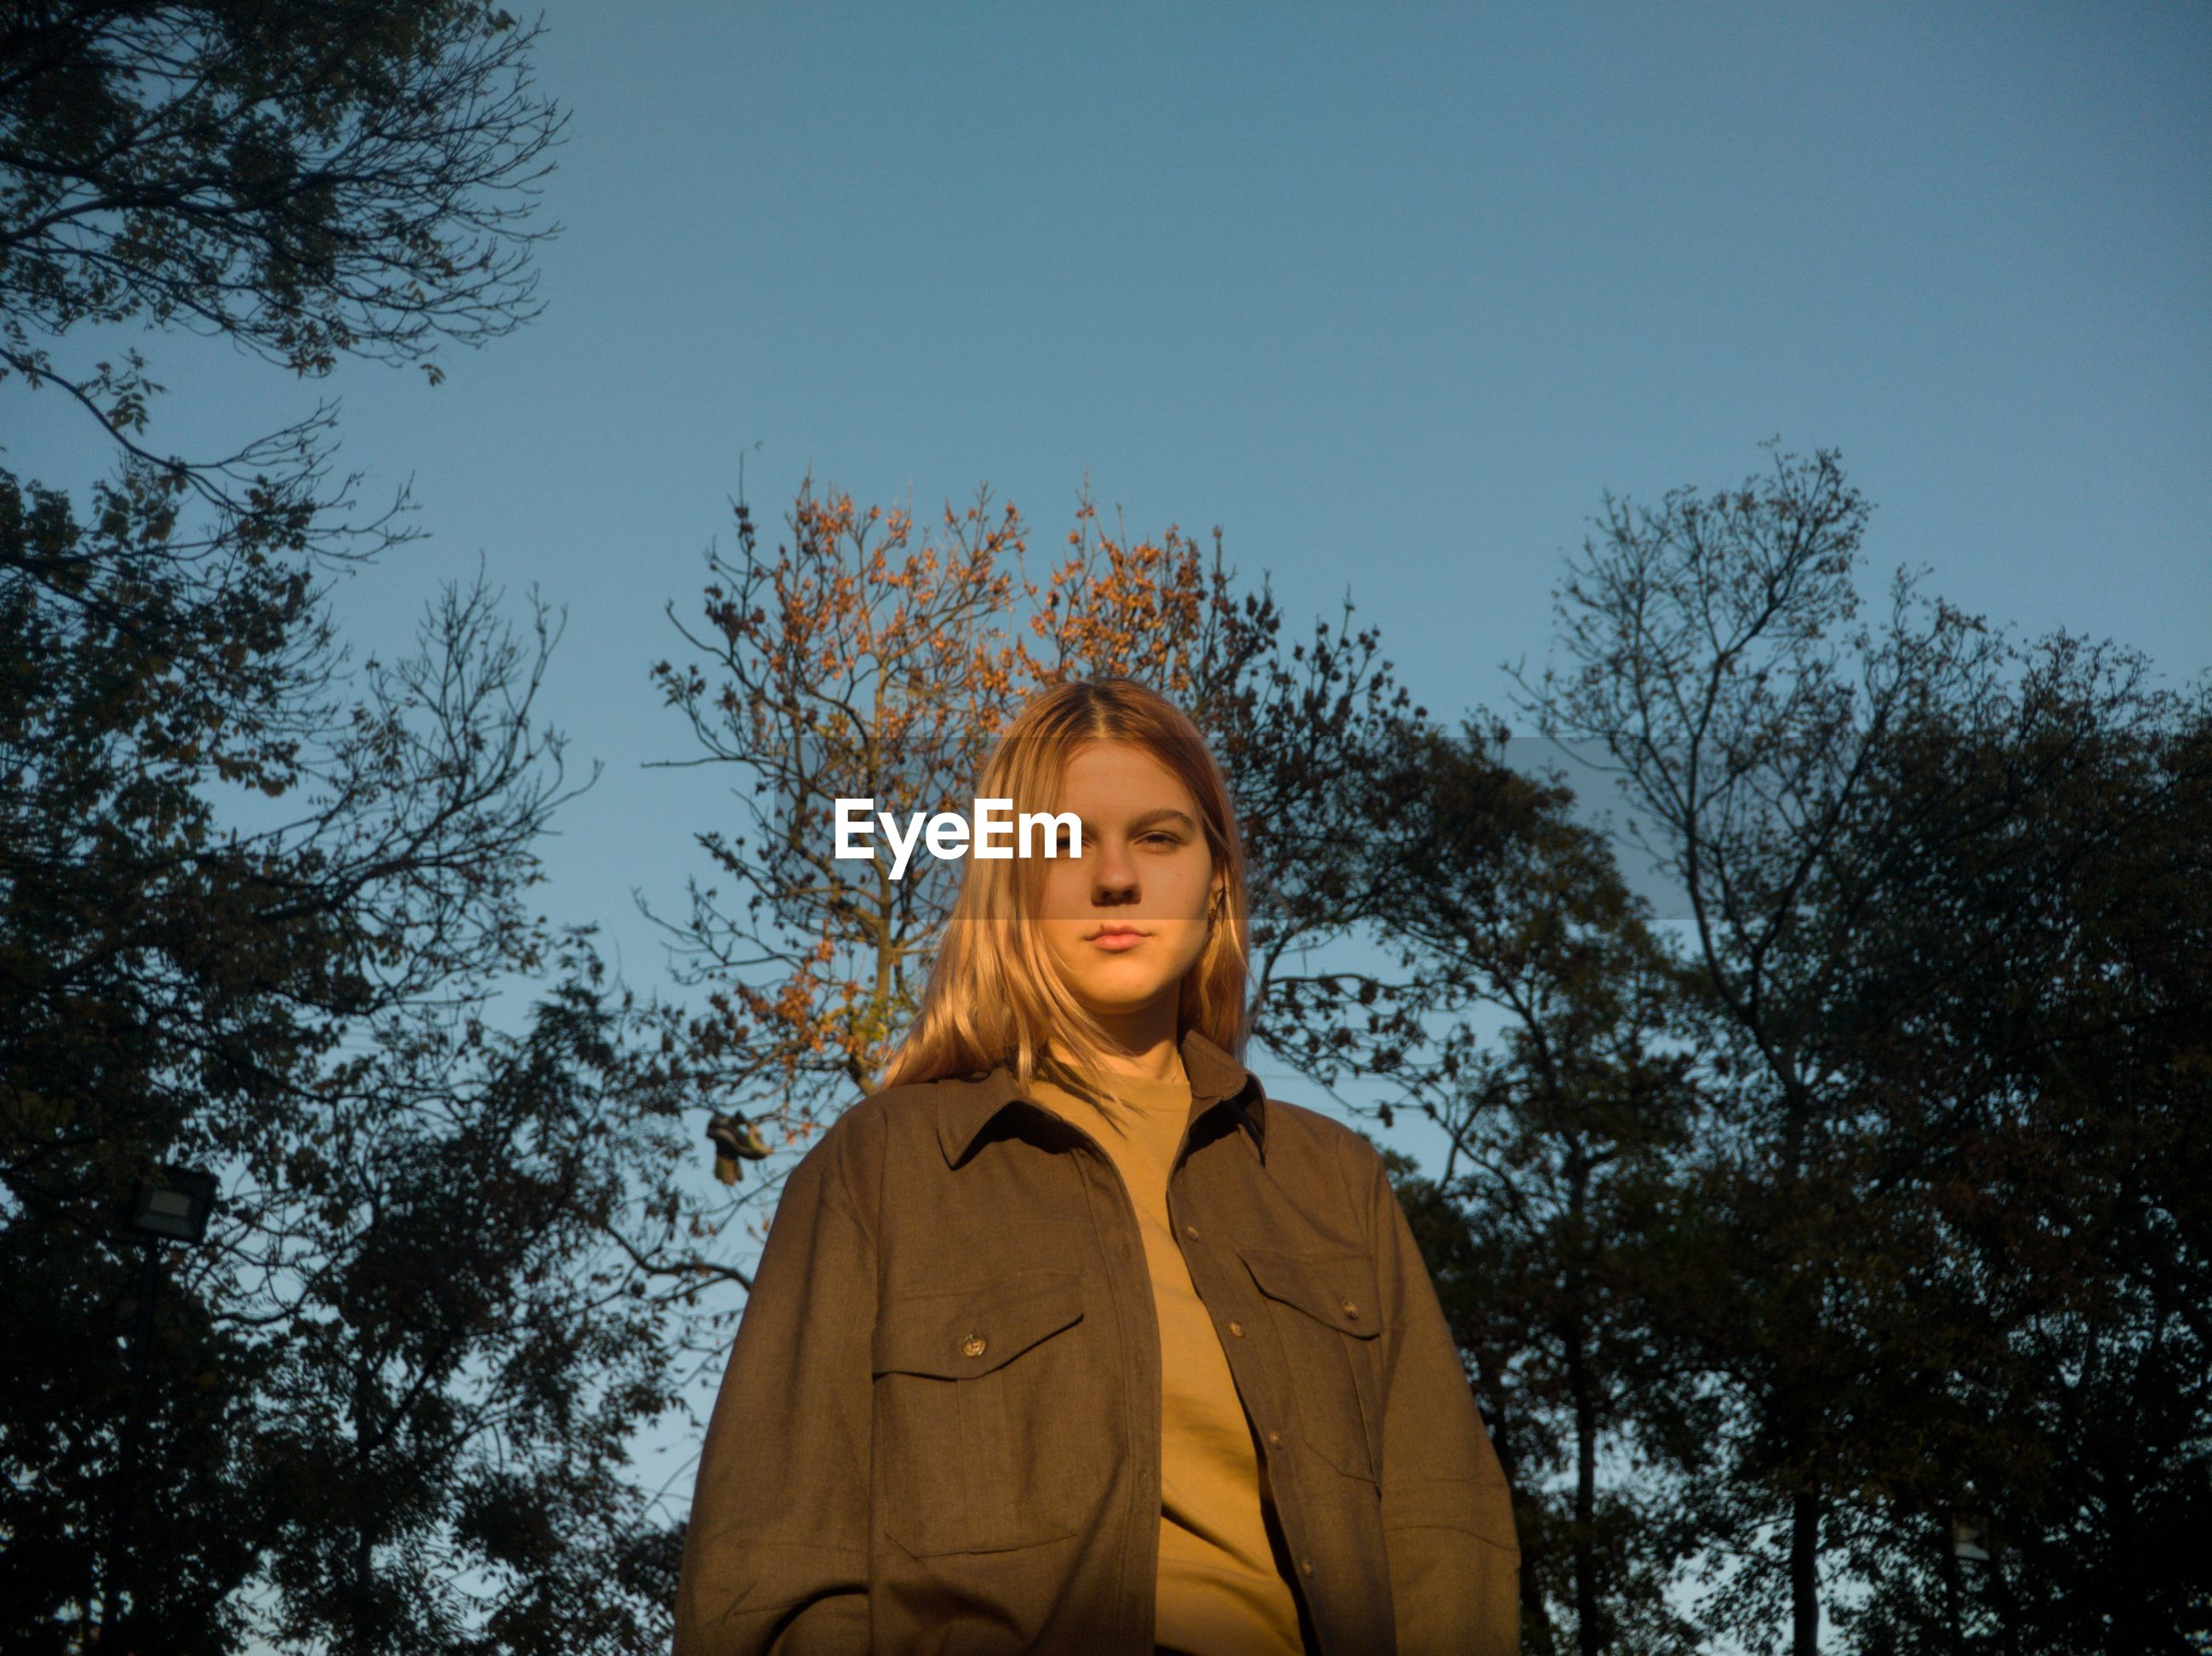 Portrait of smiling woman standing against trees and sky